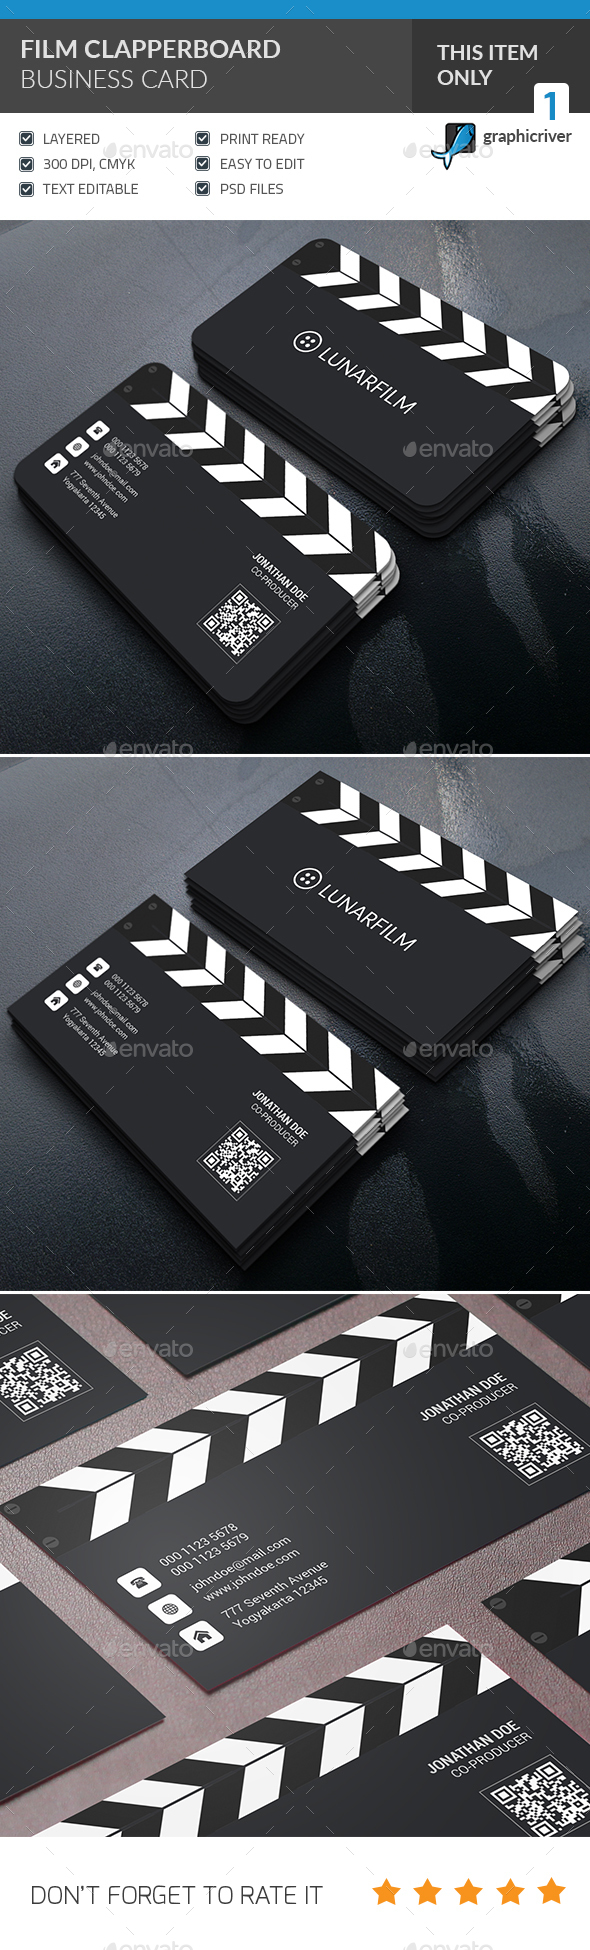 Film Clipperboard Business Card - Industry Specific Business Cards